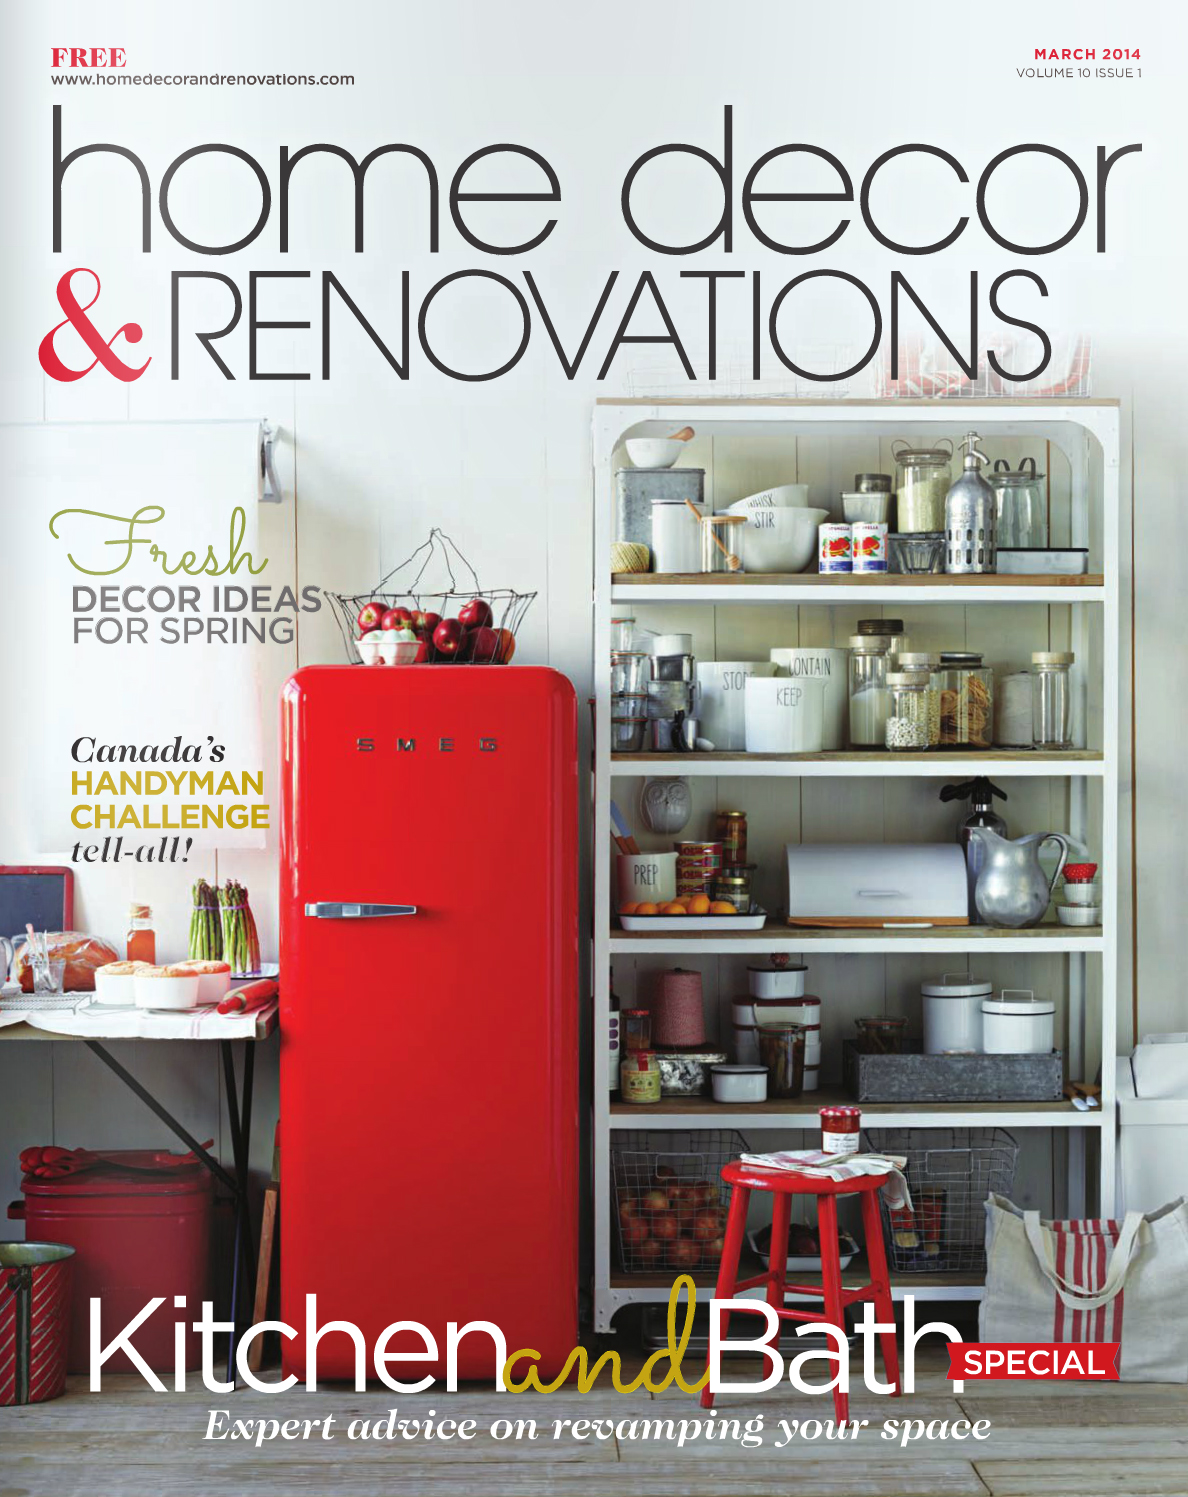 Home Decor & Renovations March 2014 Cover.jpg